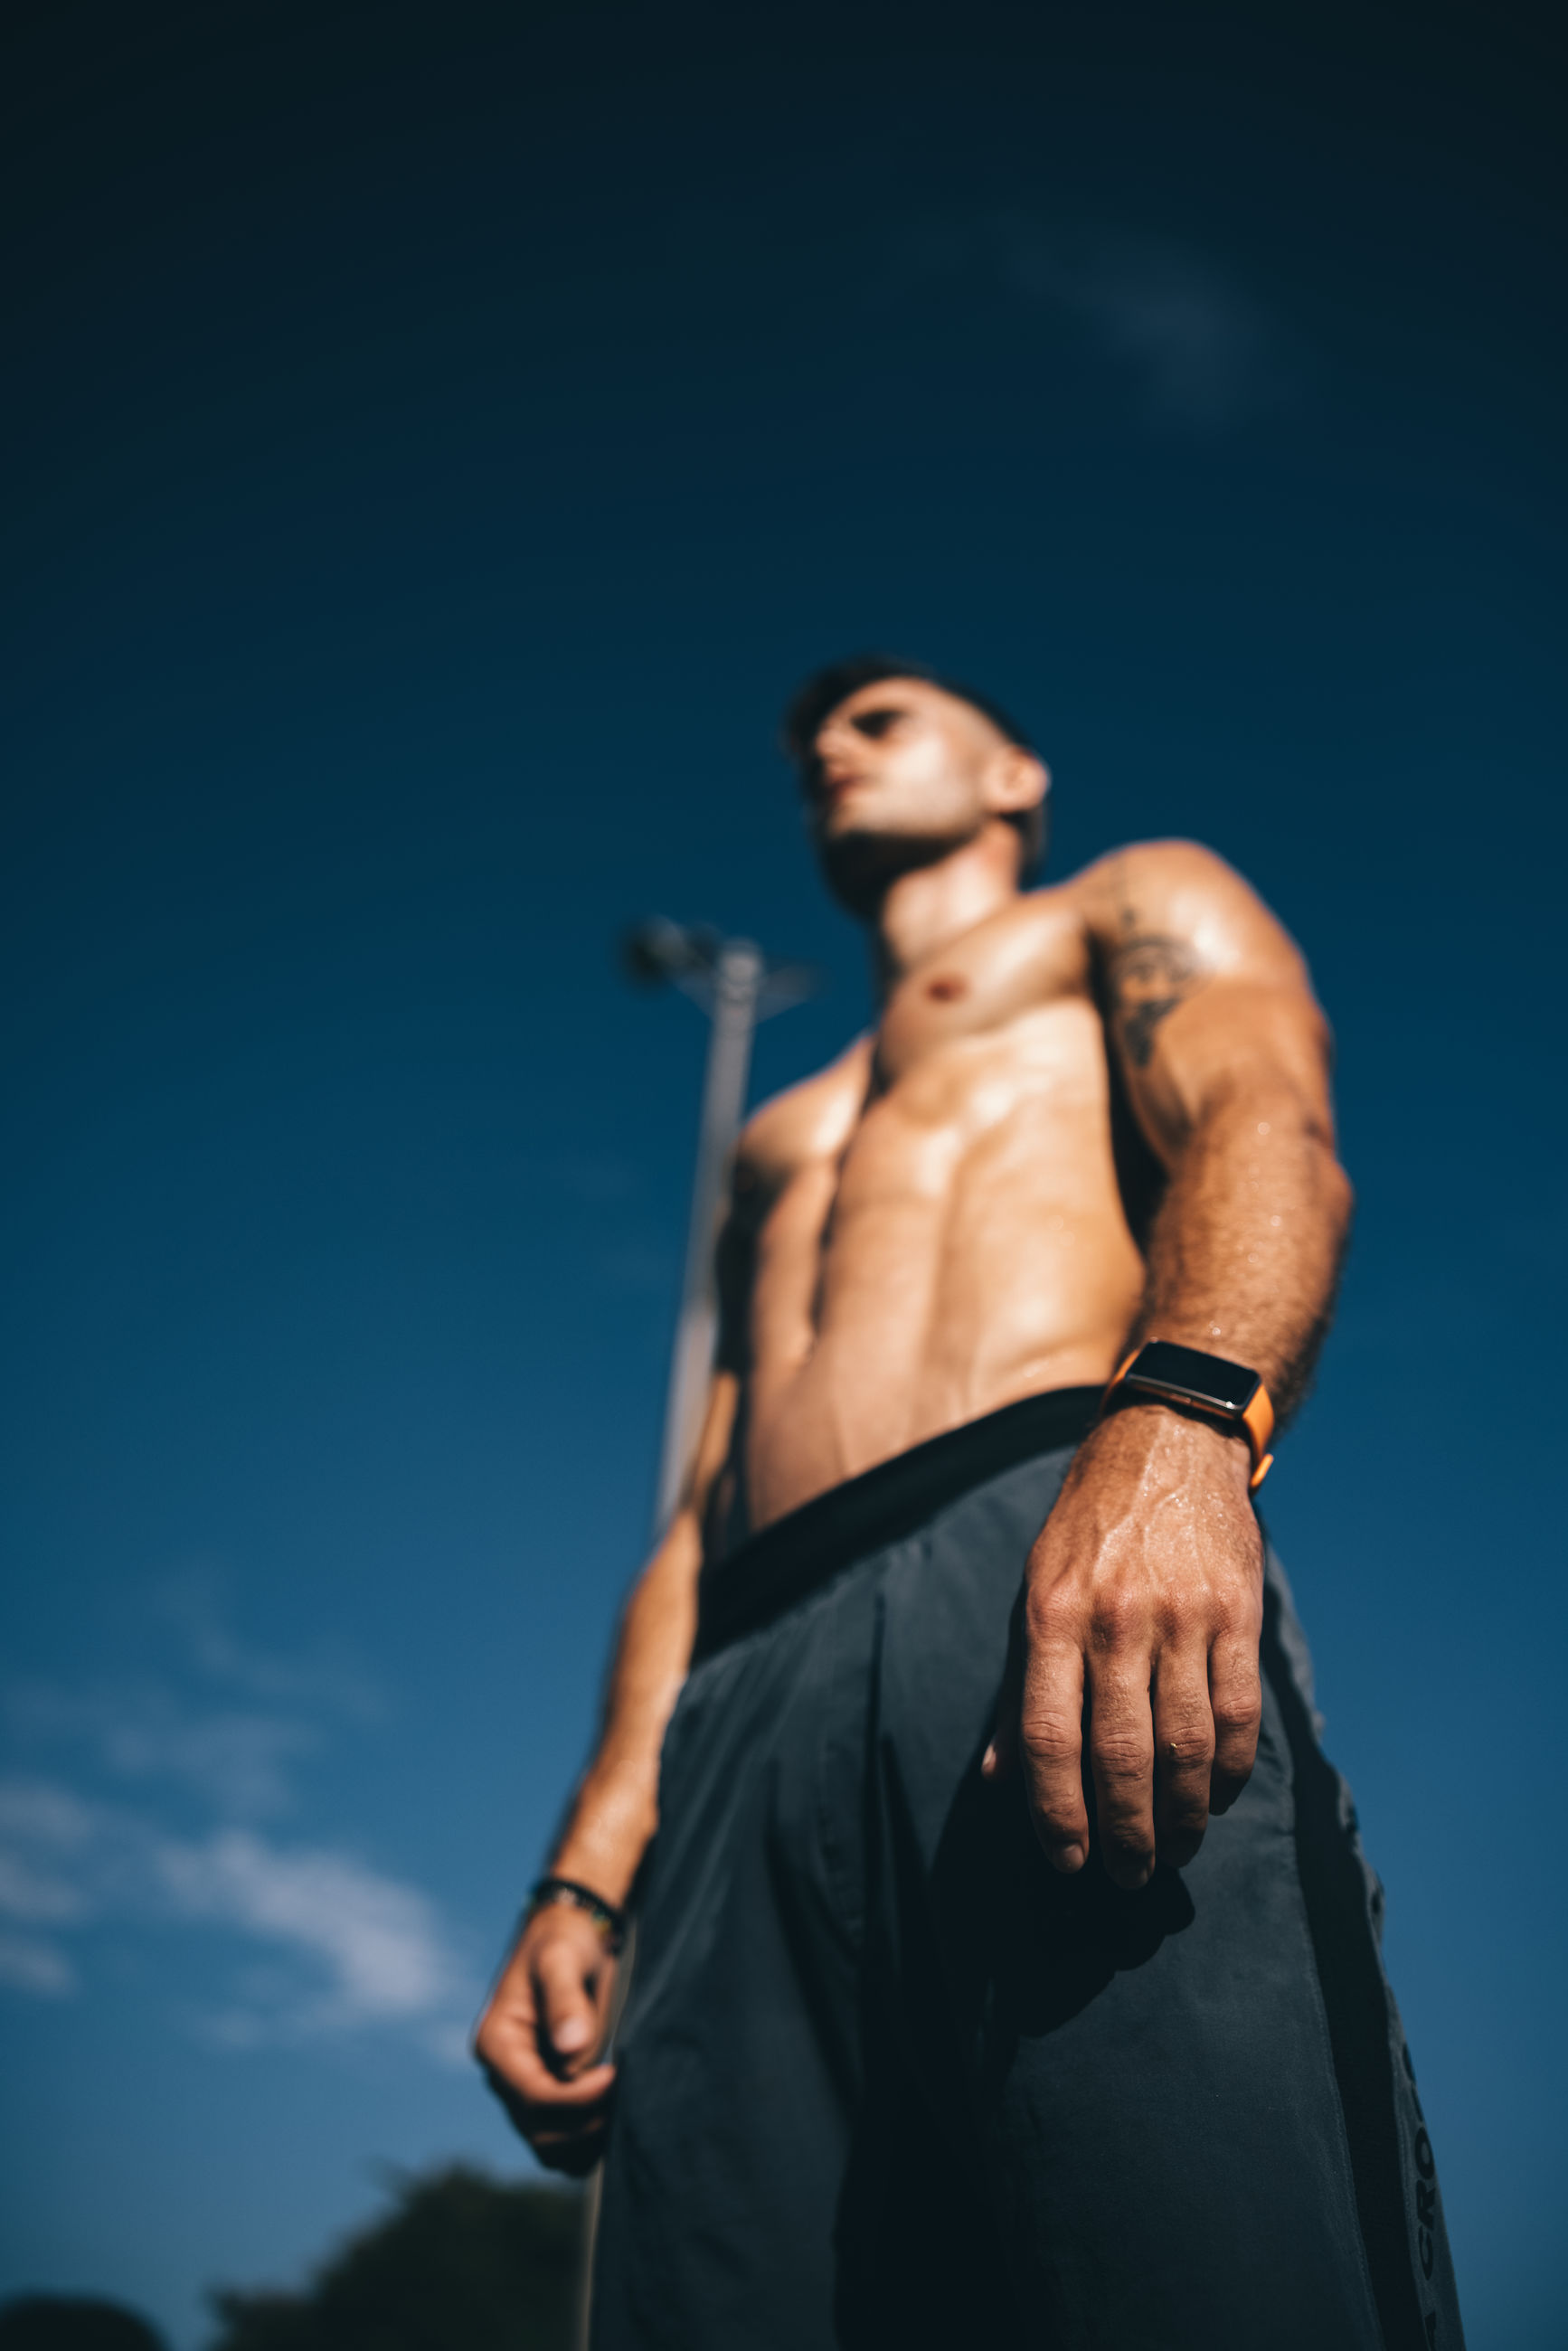 adult, muscular build, men, strength, one person, sports, athlete, exercising, young adult, sky, blue, standing, copy space, lifestyles, sports training, clothing, nature, vitality, low angle view, portrait